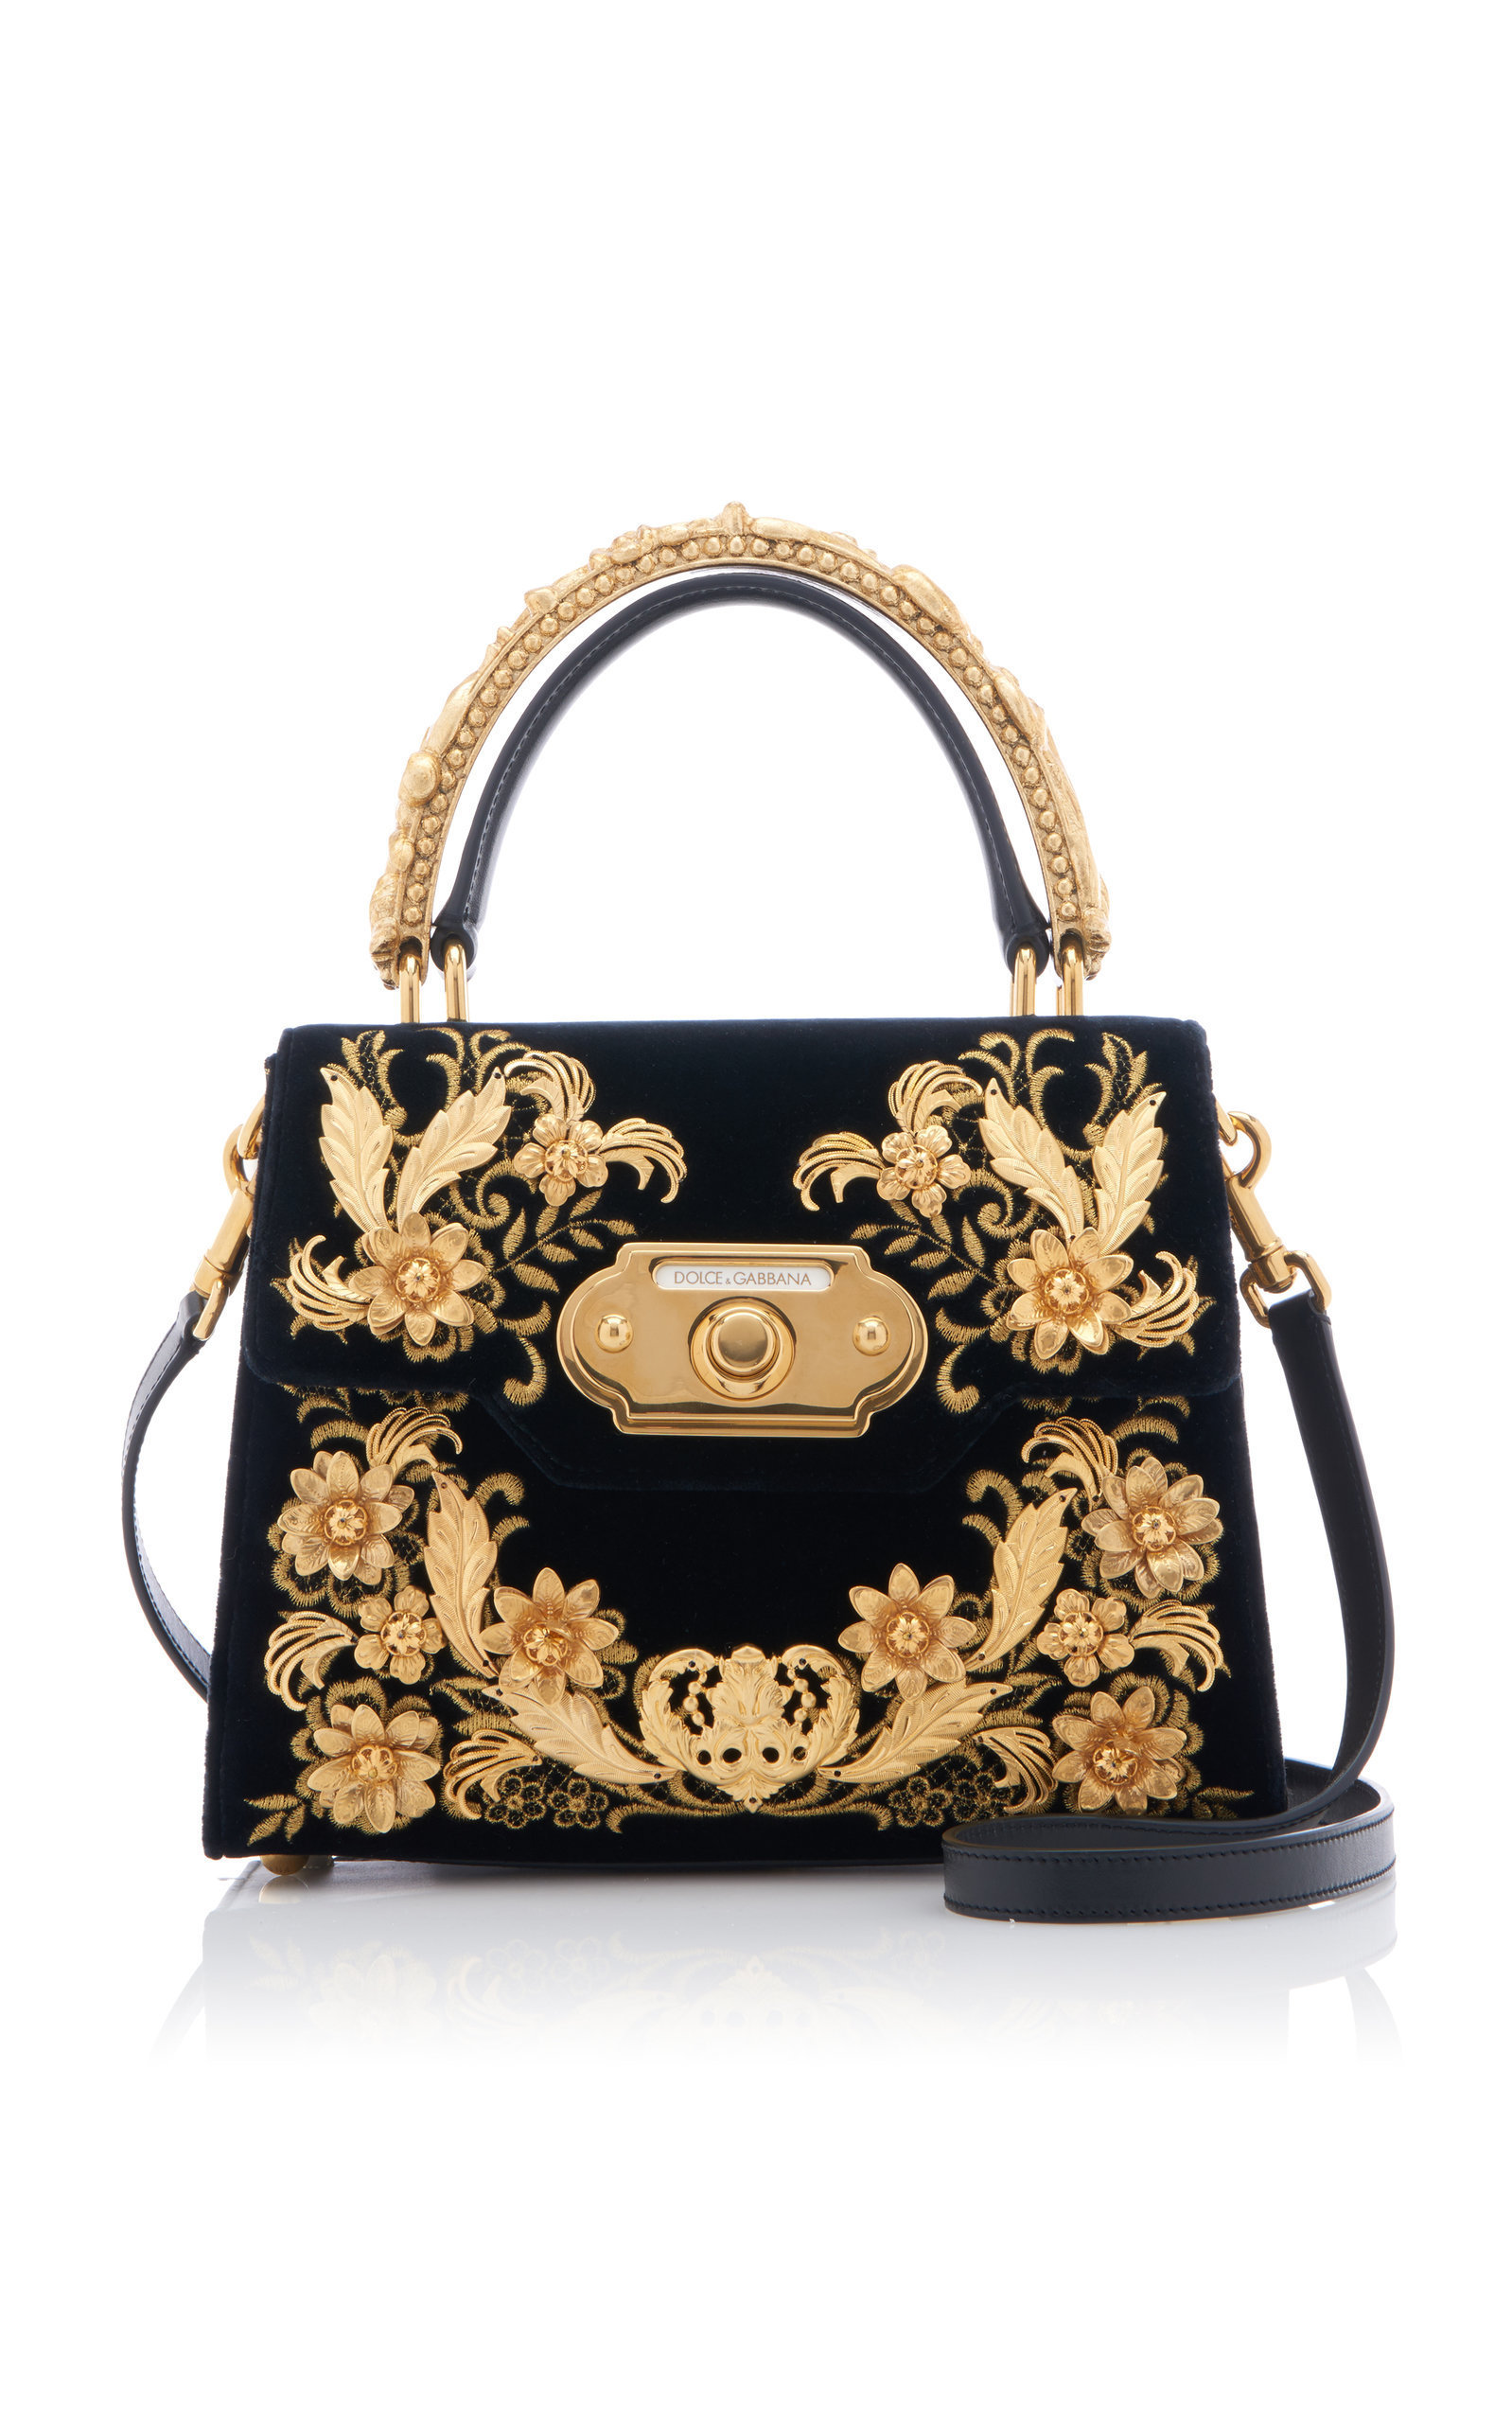 Dolce And Gabbana -Spring 2020 -Love Christmas Dolce & Gabbana Embroidered Velvet Top Handle Bag in 2020 | Bags